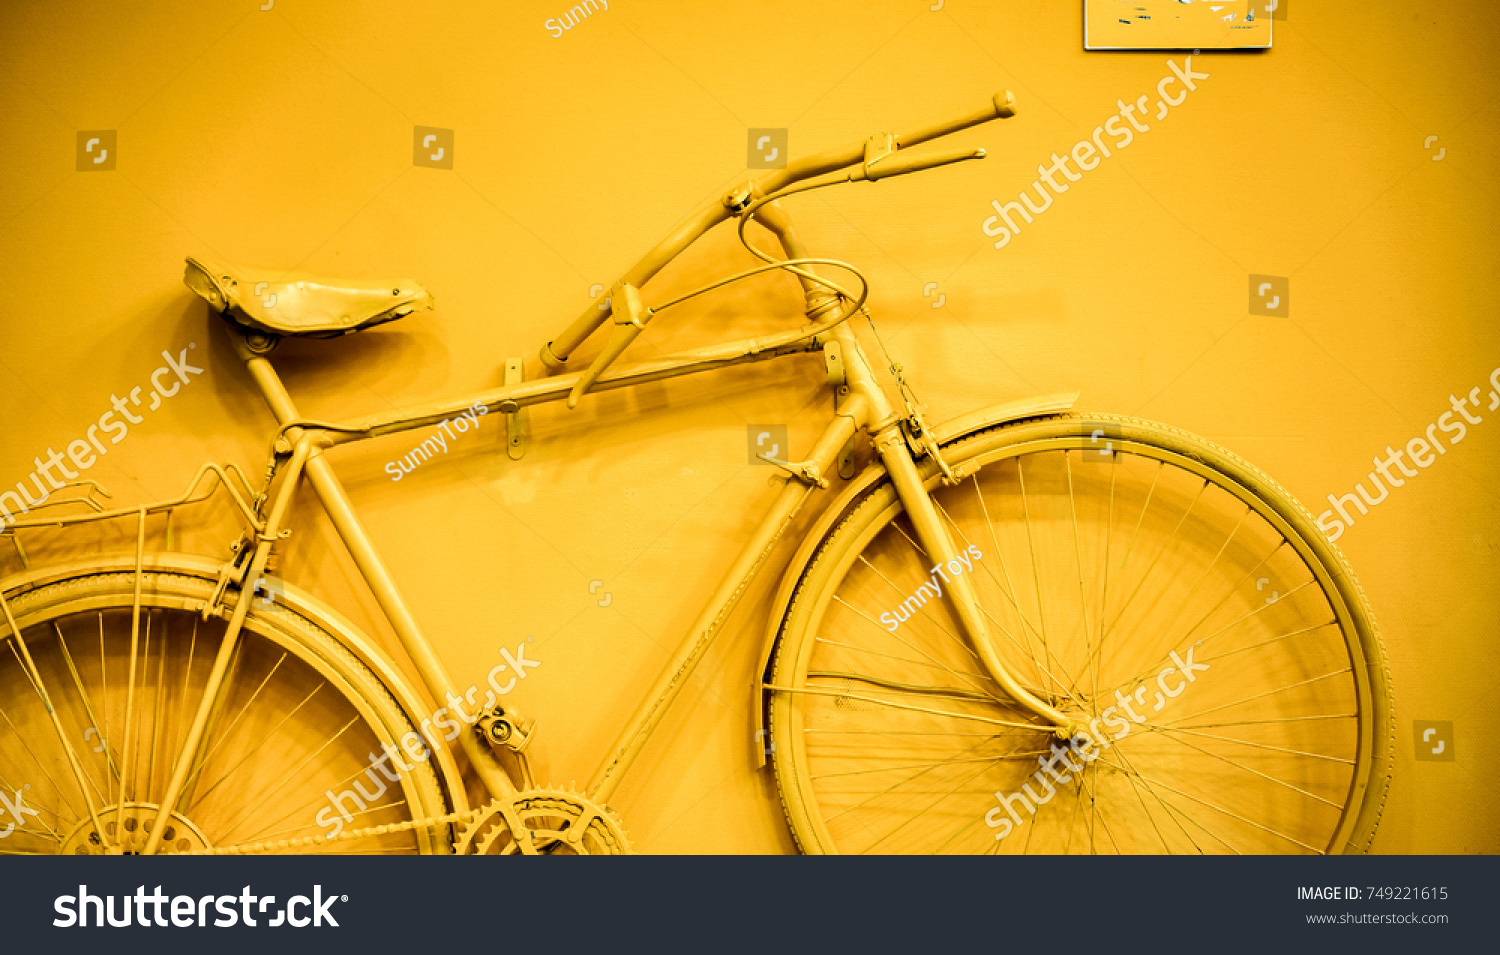 Close Bicycle Decoration On Wall Old Stock Photo 749221615 ...